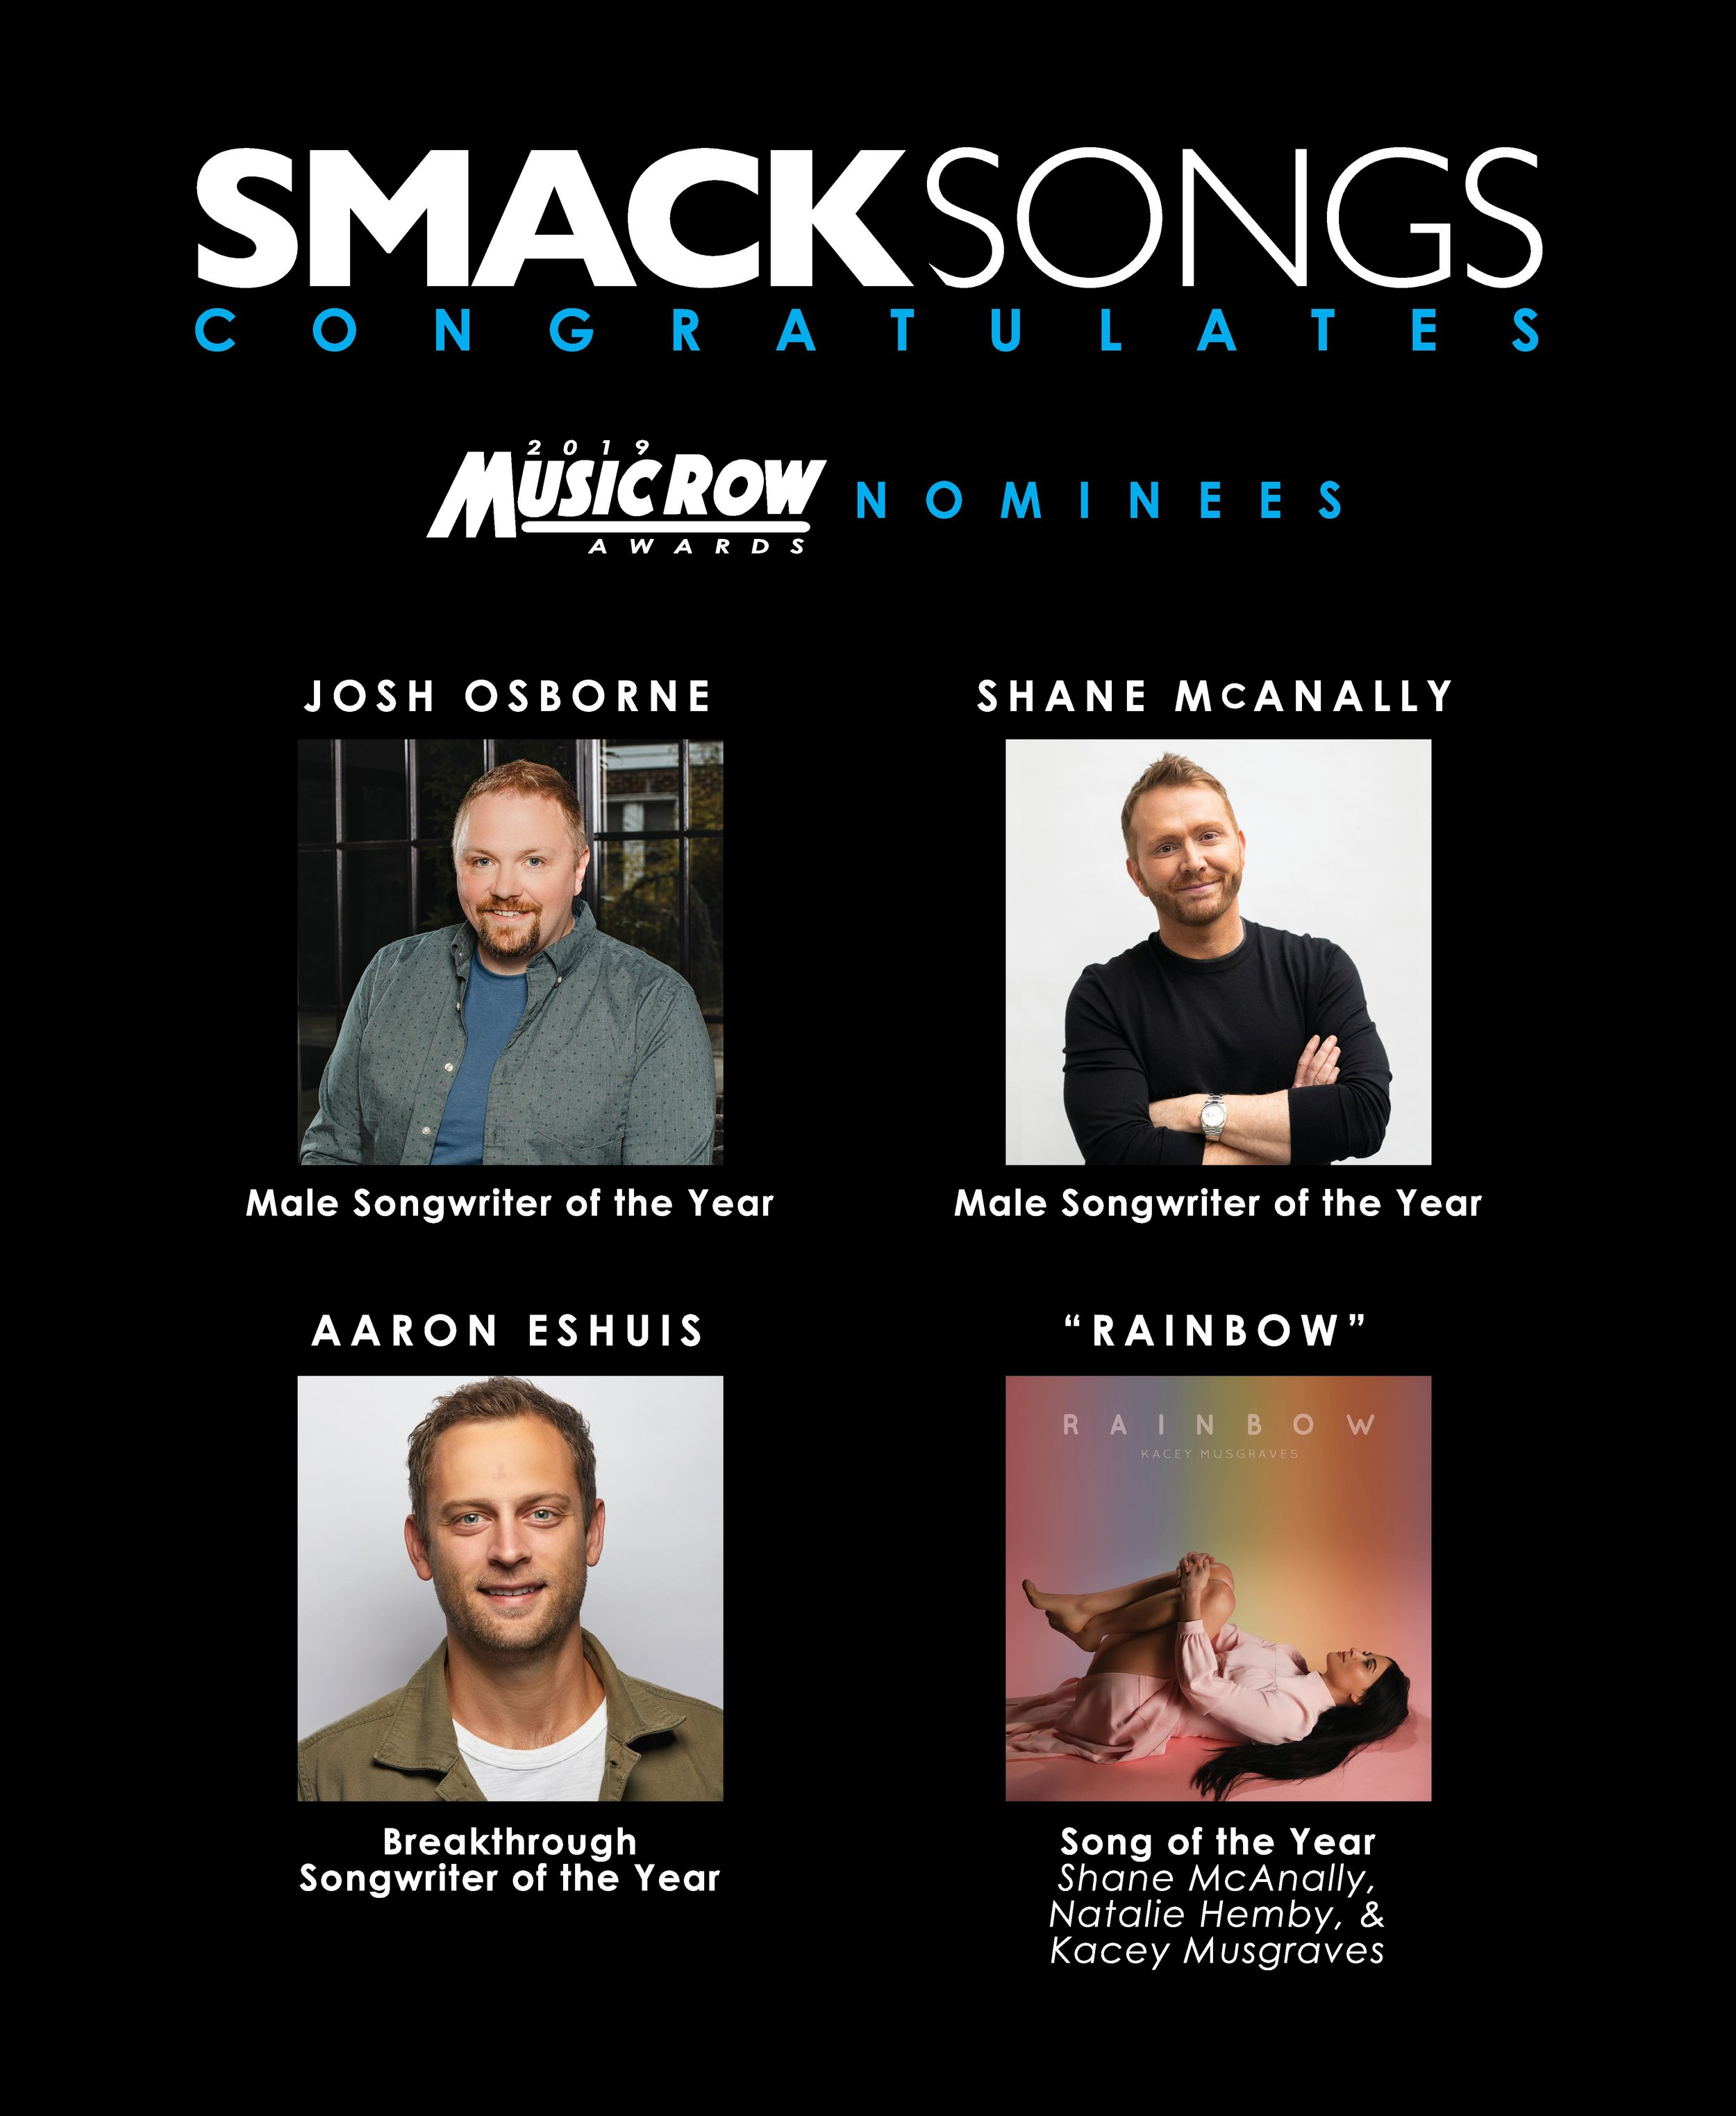 SMACK MusicRow Awards Nominations